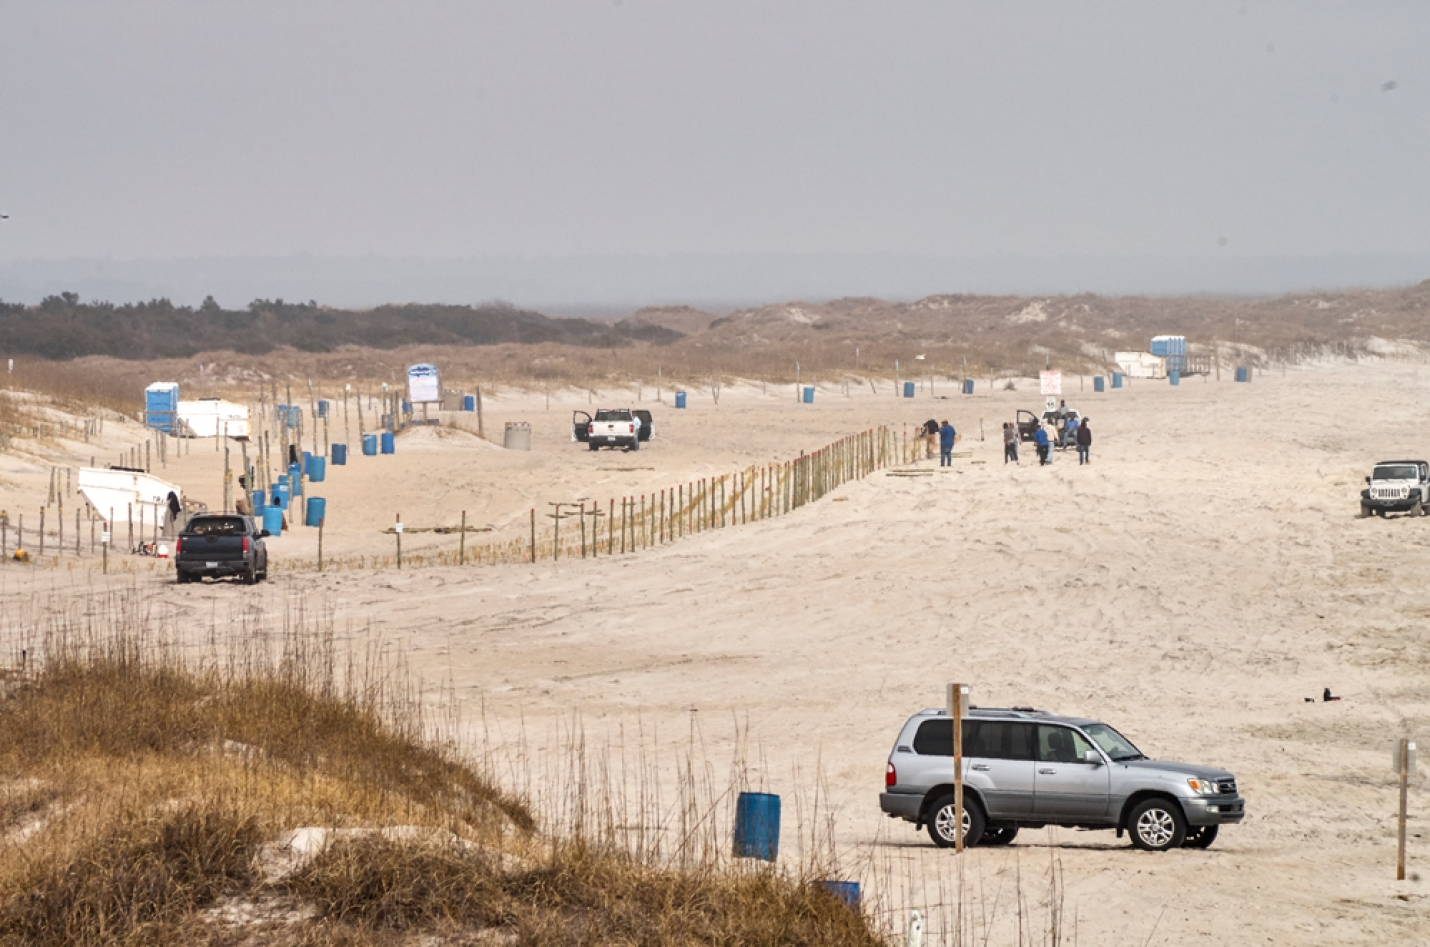 The Town of Carolina Beach reopened Freeman Park on Tuesday Feb. 20th. The following day they removed posts erected by a property owner that caused the closing earlier in the week. Now the property owner is appealing a Notice of Violation issued by the Town.